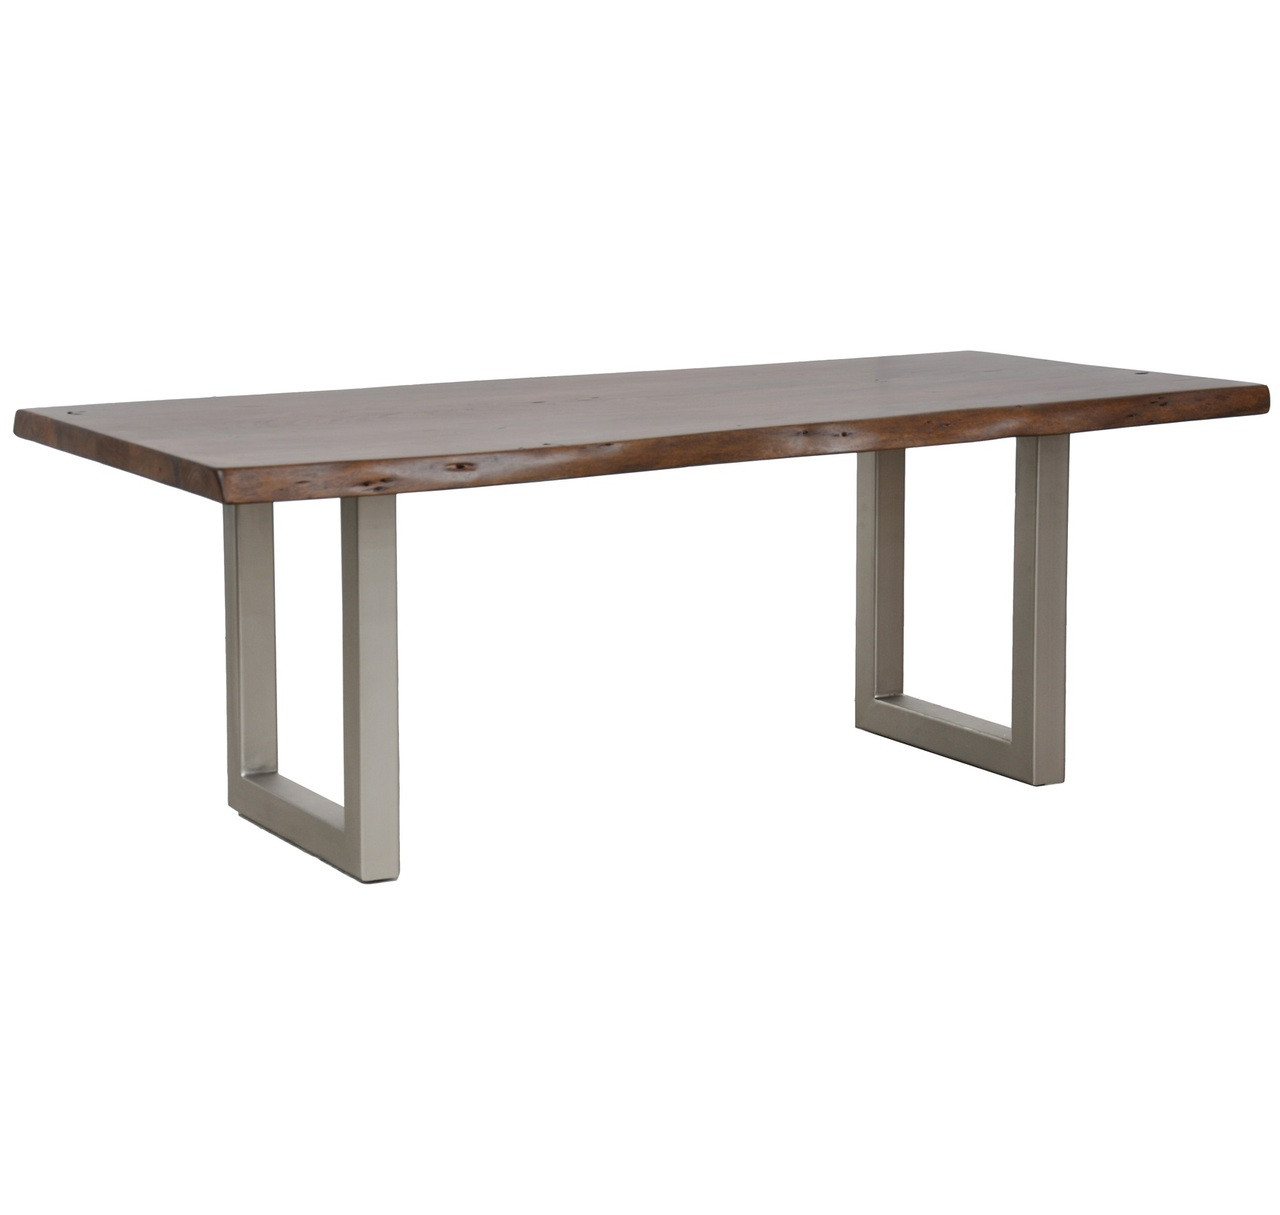 Montana Solid Wood Metal Leg Dining Table 94quot Zin Home : MontanaSolidWoodMetalLegDiningTable8264650141508059812801280 from www.zinhome.com size 1280 x 1215 jpeg 61kB